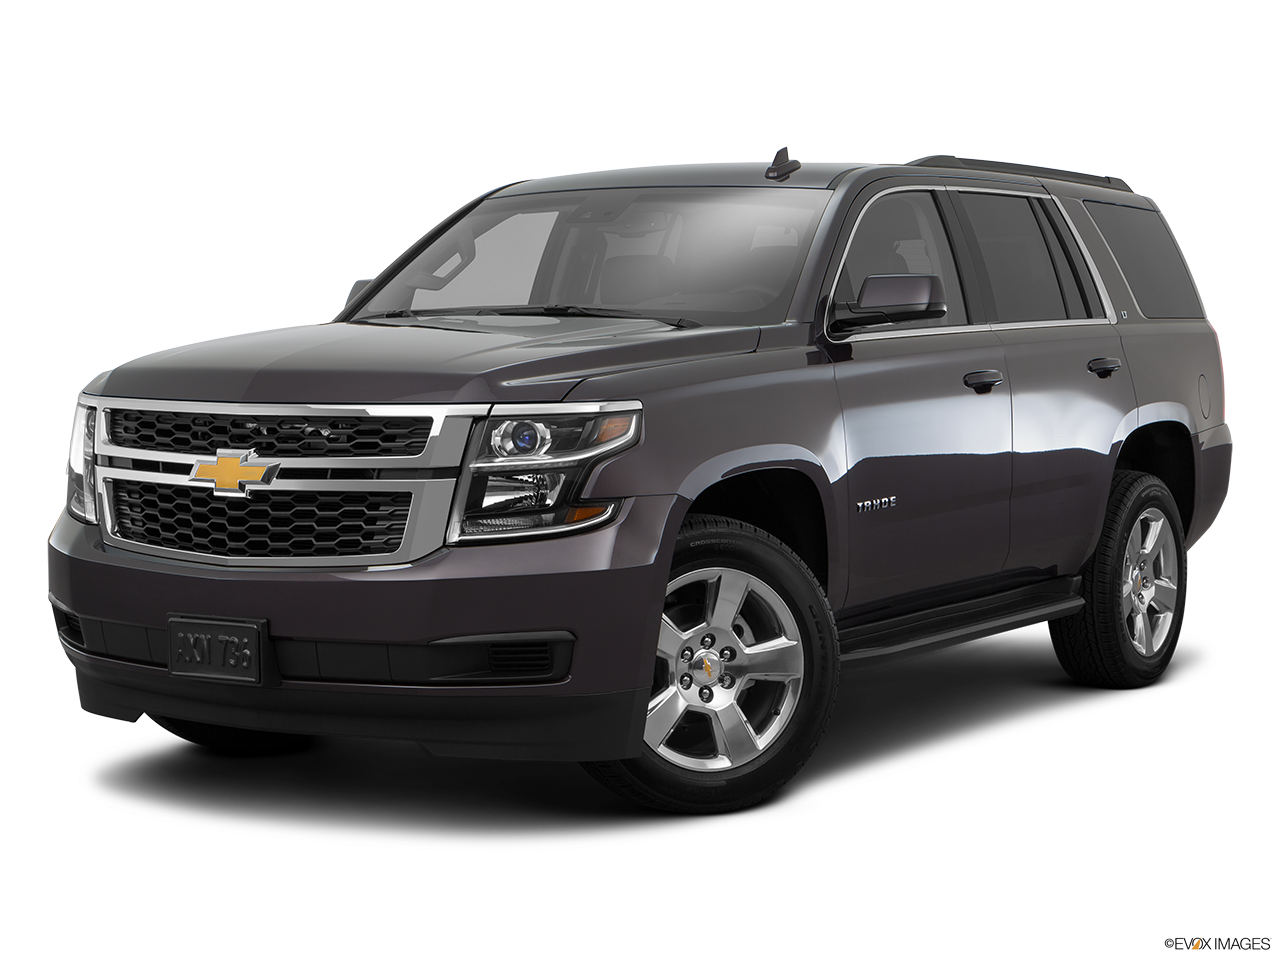 2016 Chevrolet Tahoe Riverside Moss Bros 2015 Chevy Chrome Roof Rack Test Drive A At In Moreno Valley